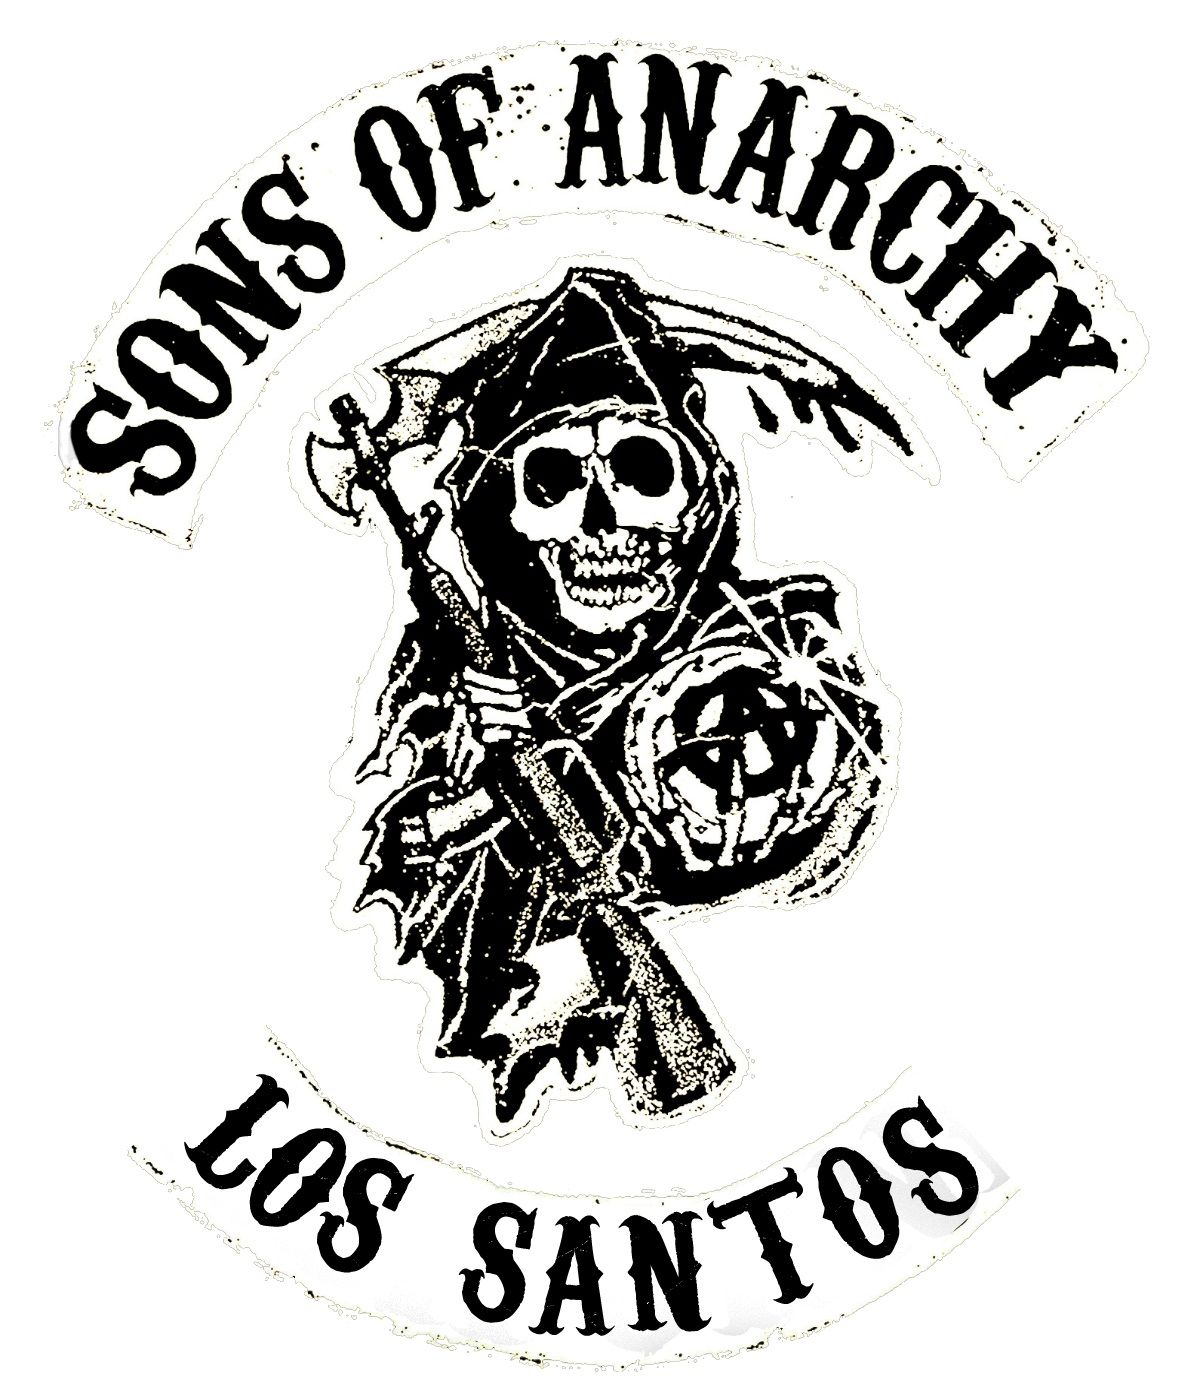 Soa Reaper Logos And States Sons Of Anarchy Reaper Logo Skull